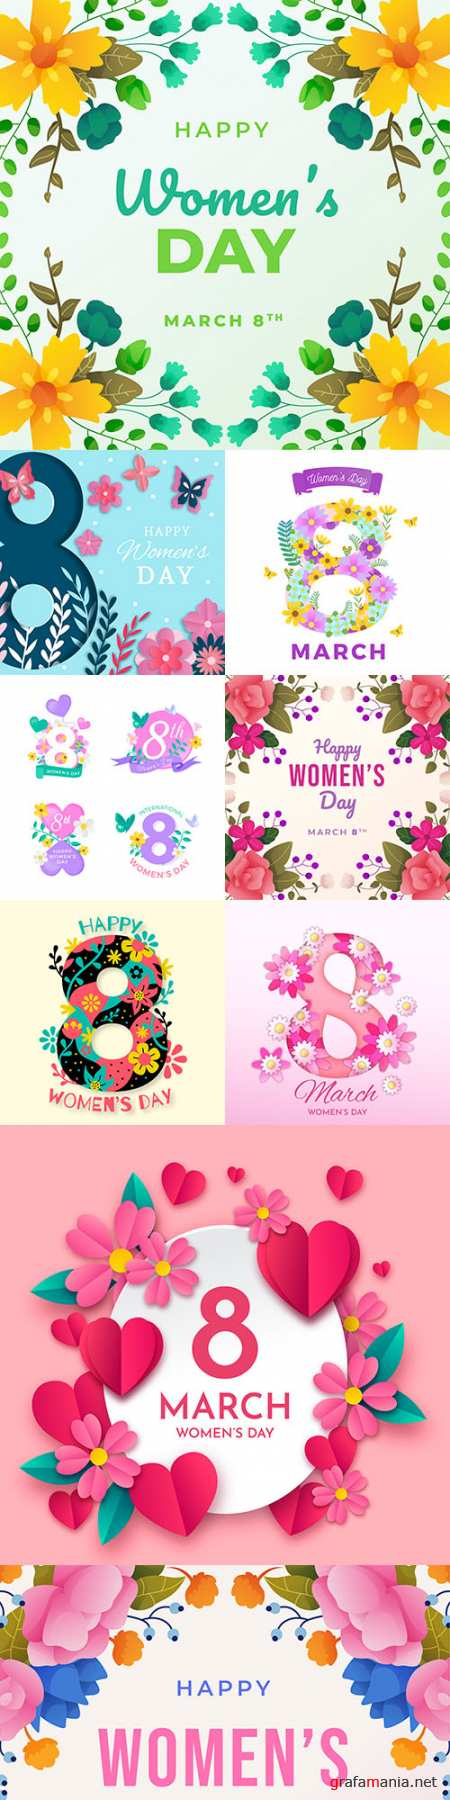 March 8 Women's Day illustration design concept 3